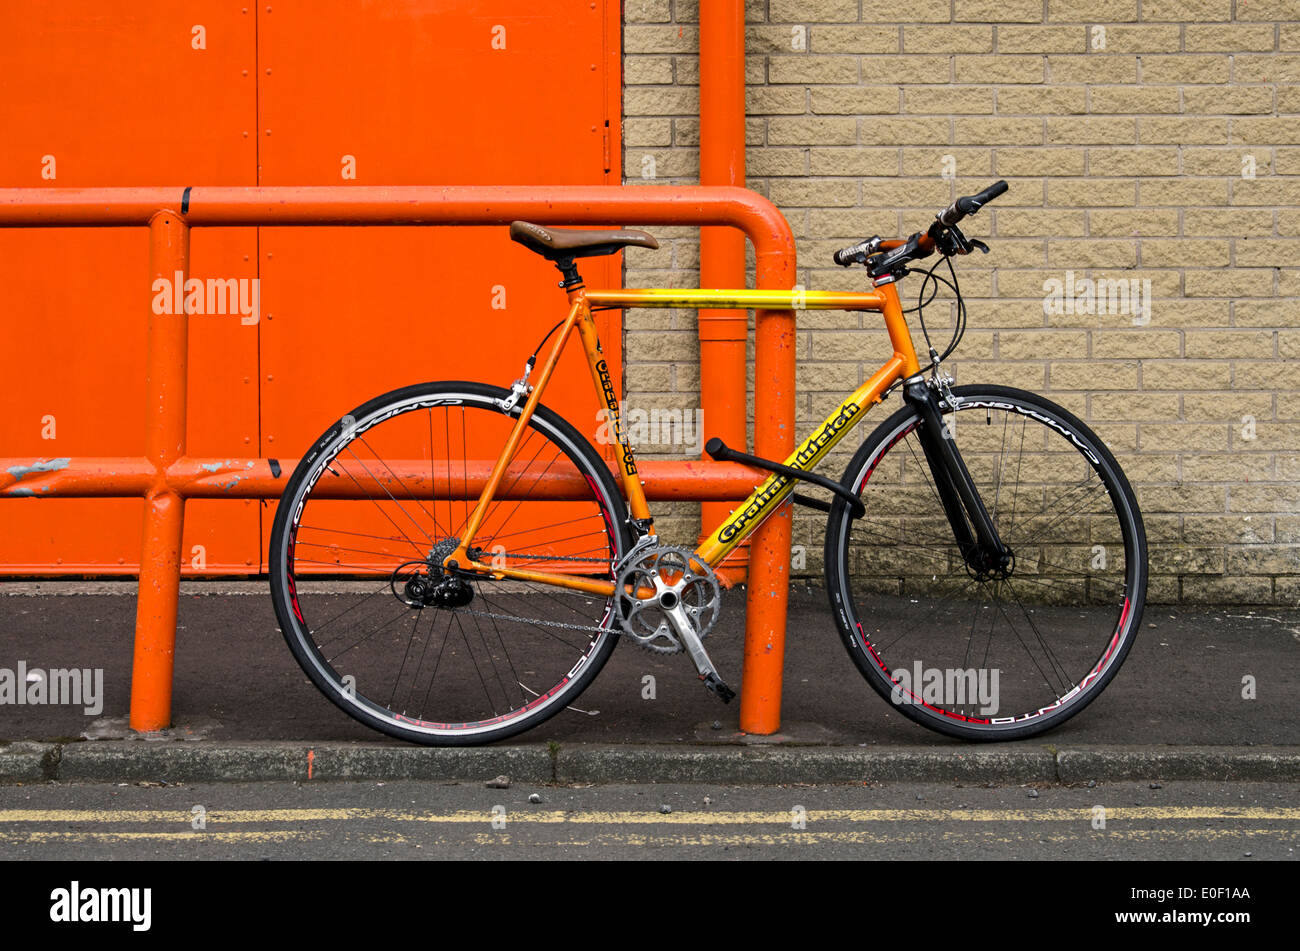 An orange and yellow coloured bicycle secured to an orange rail with an orange door in the background. - Stock Image